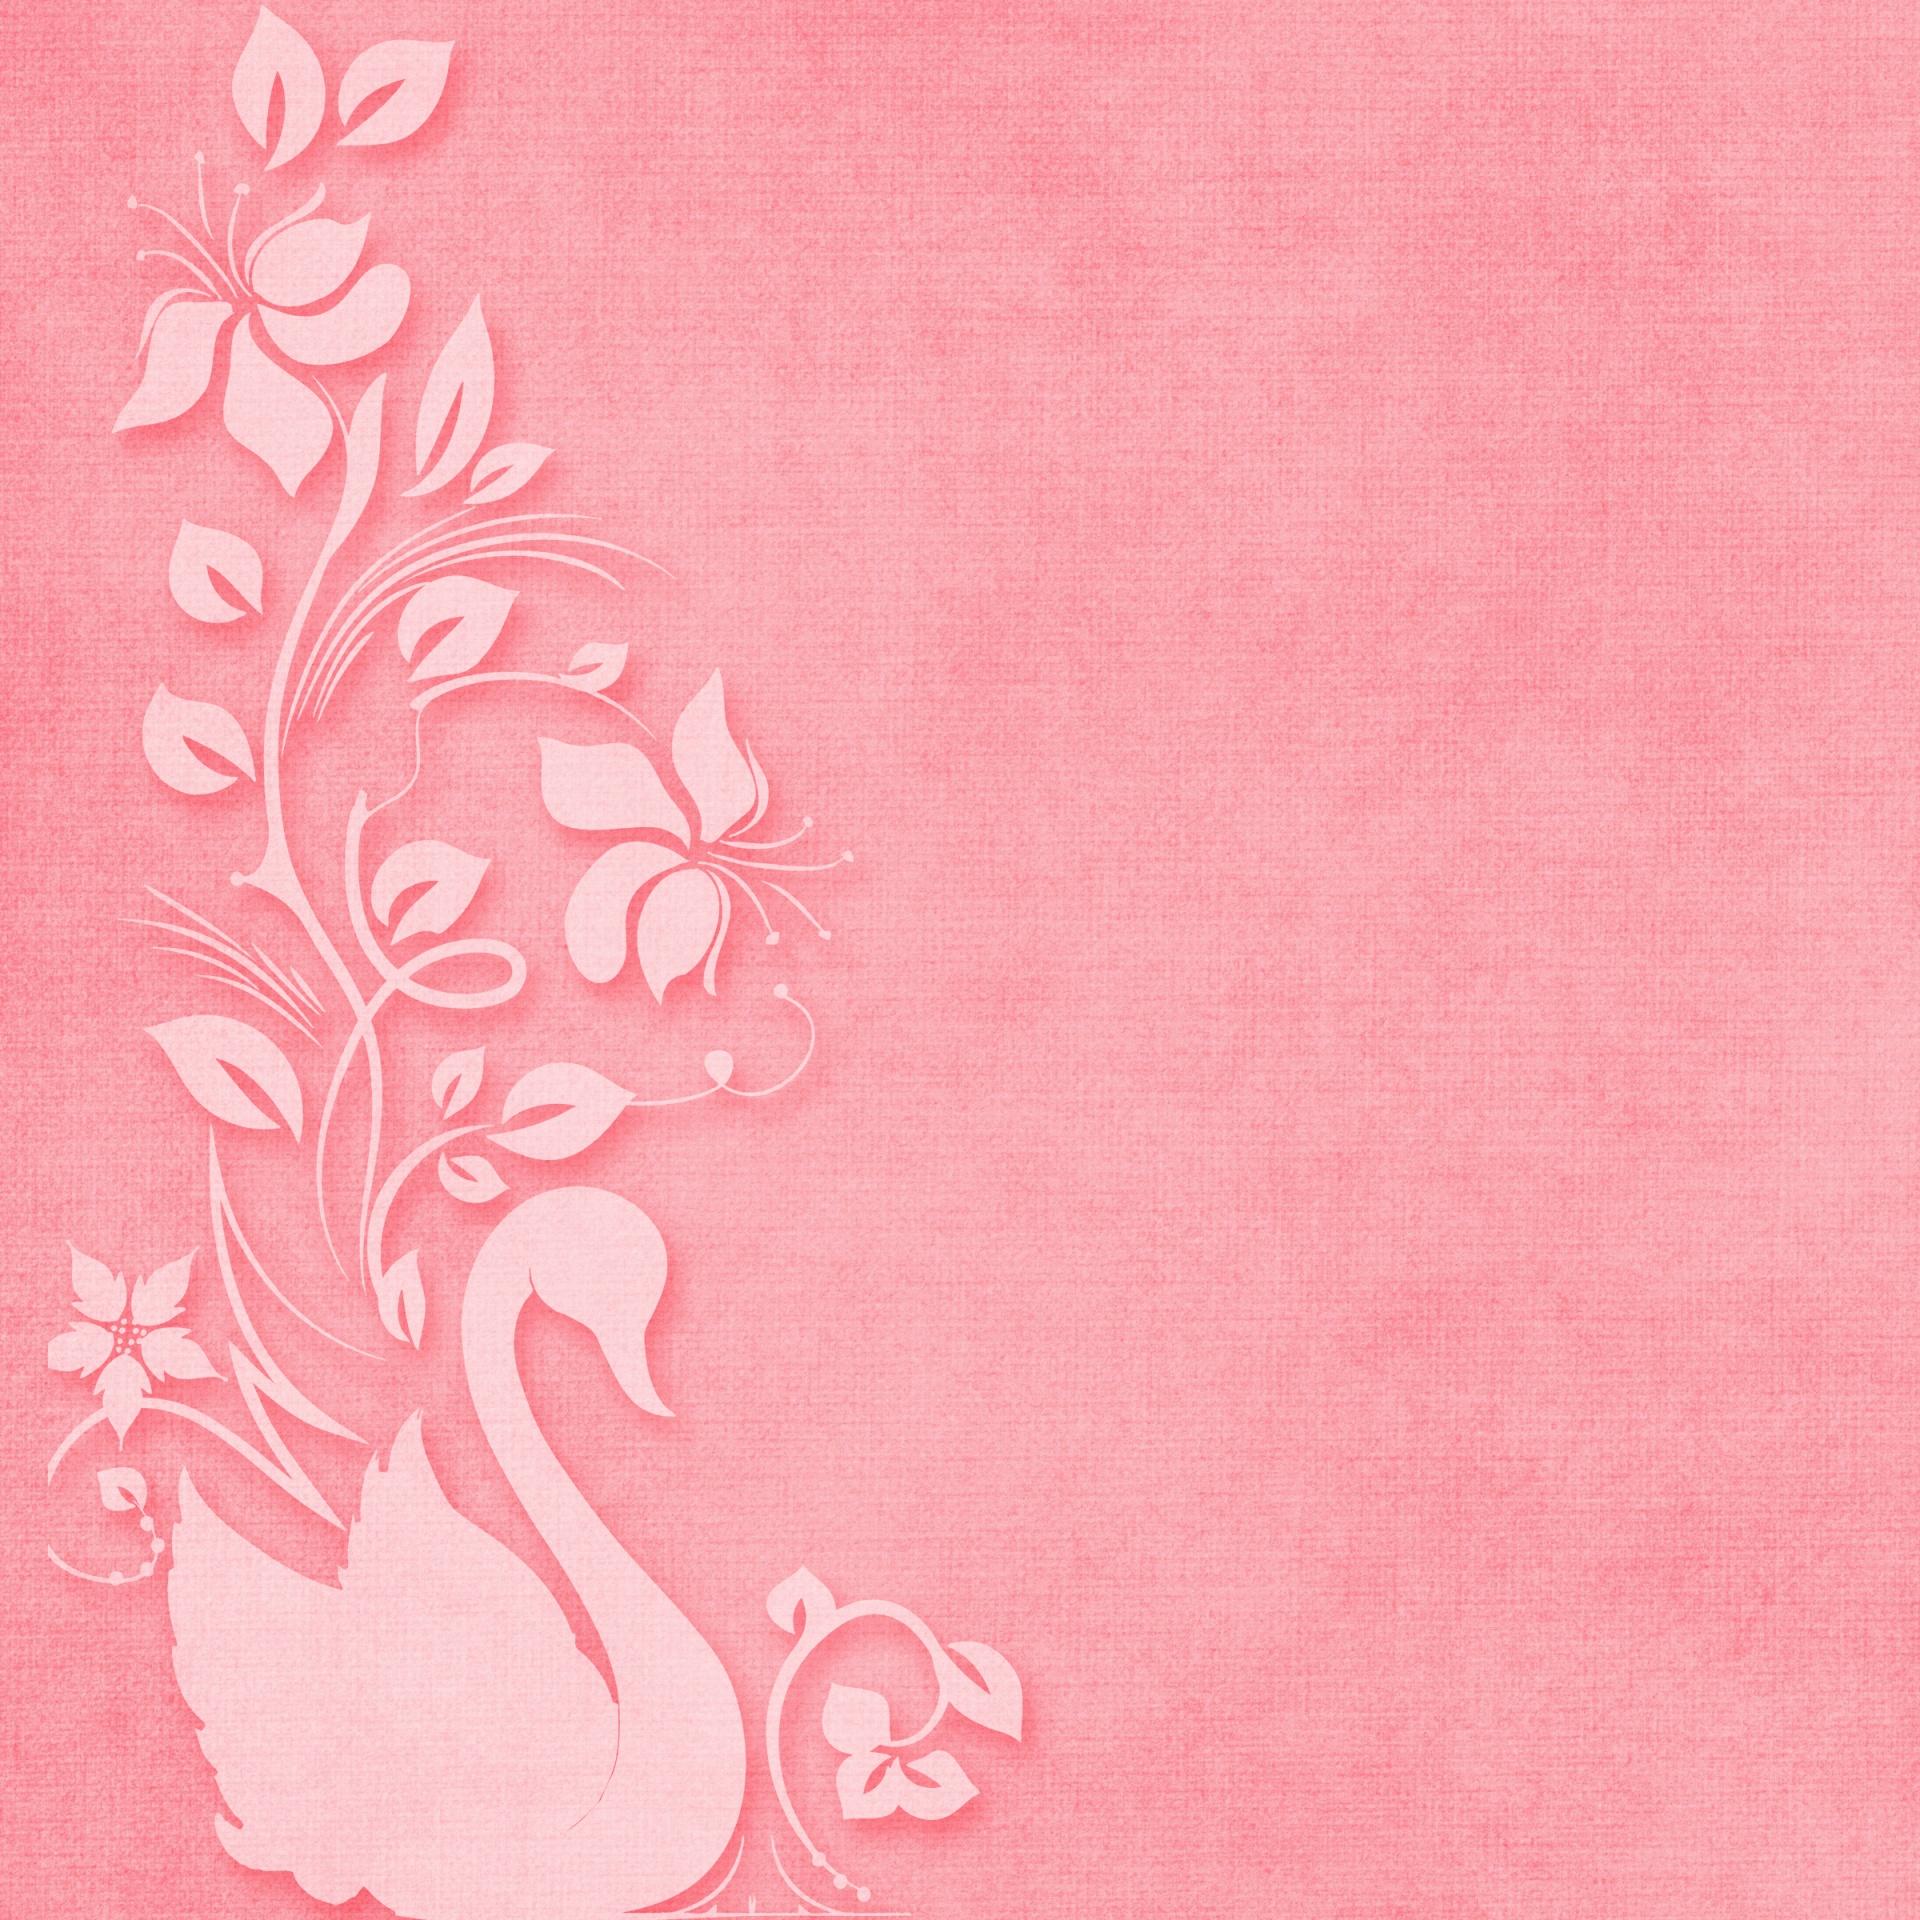 Download 6600 Background Decoration HD Terbaru